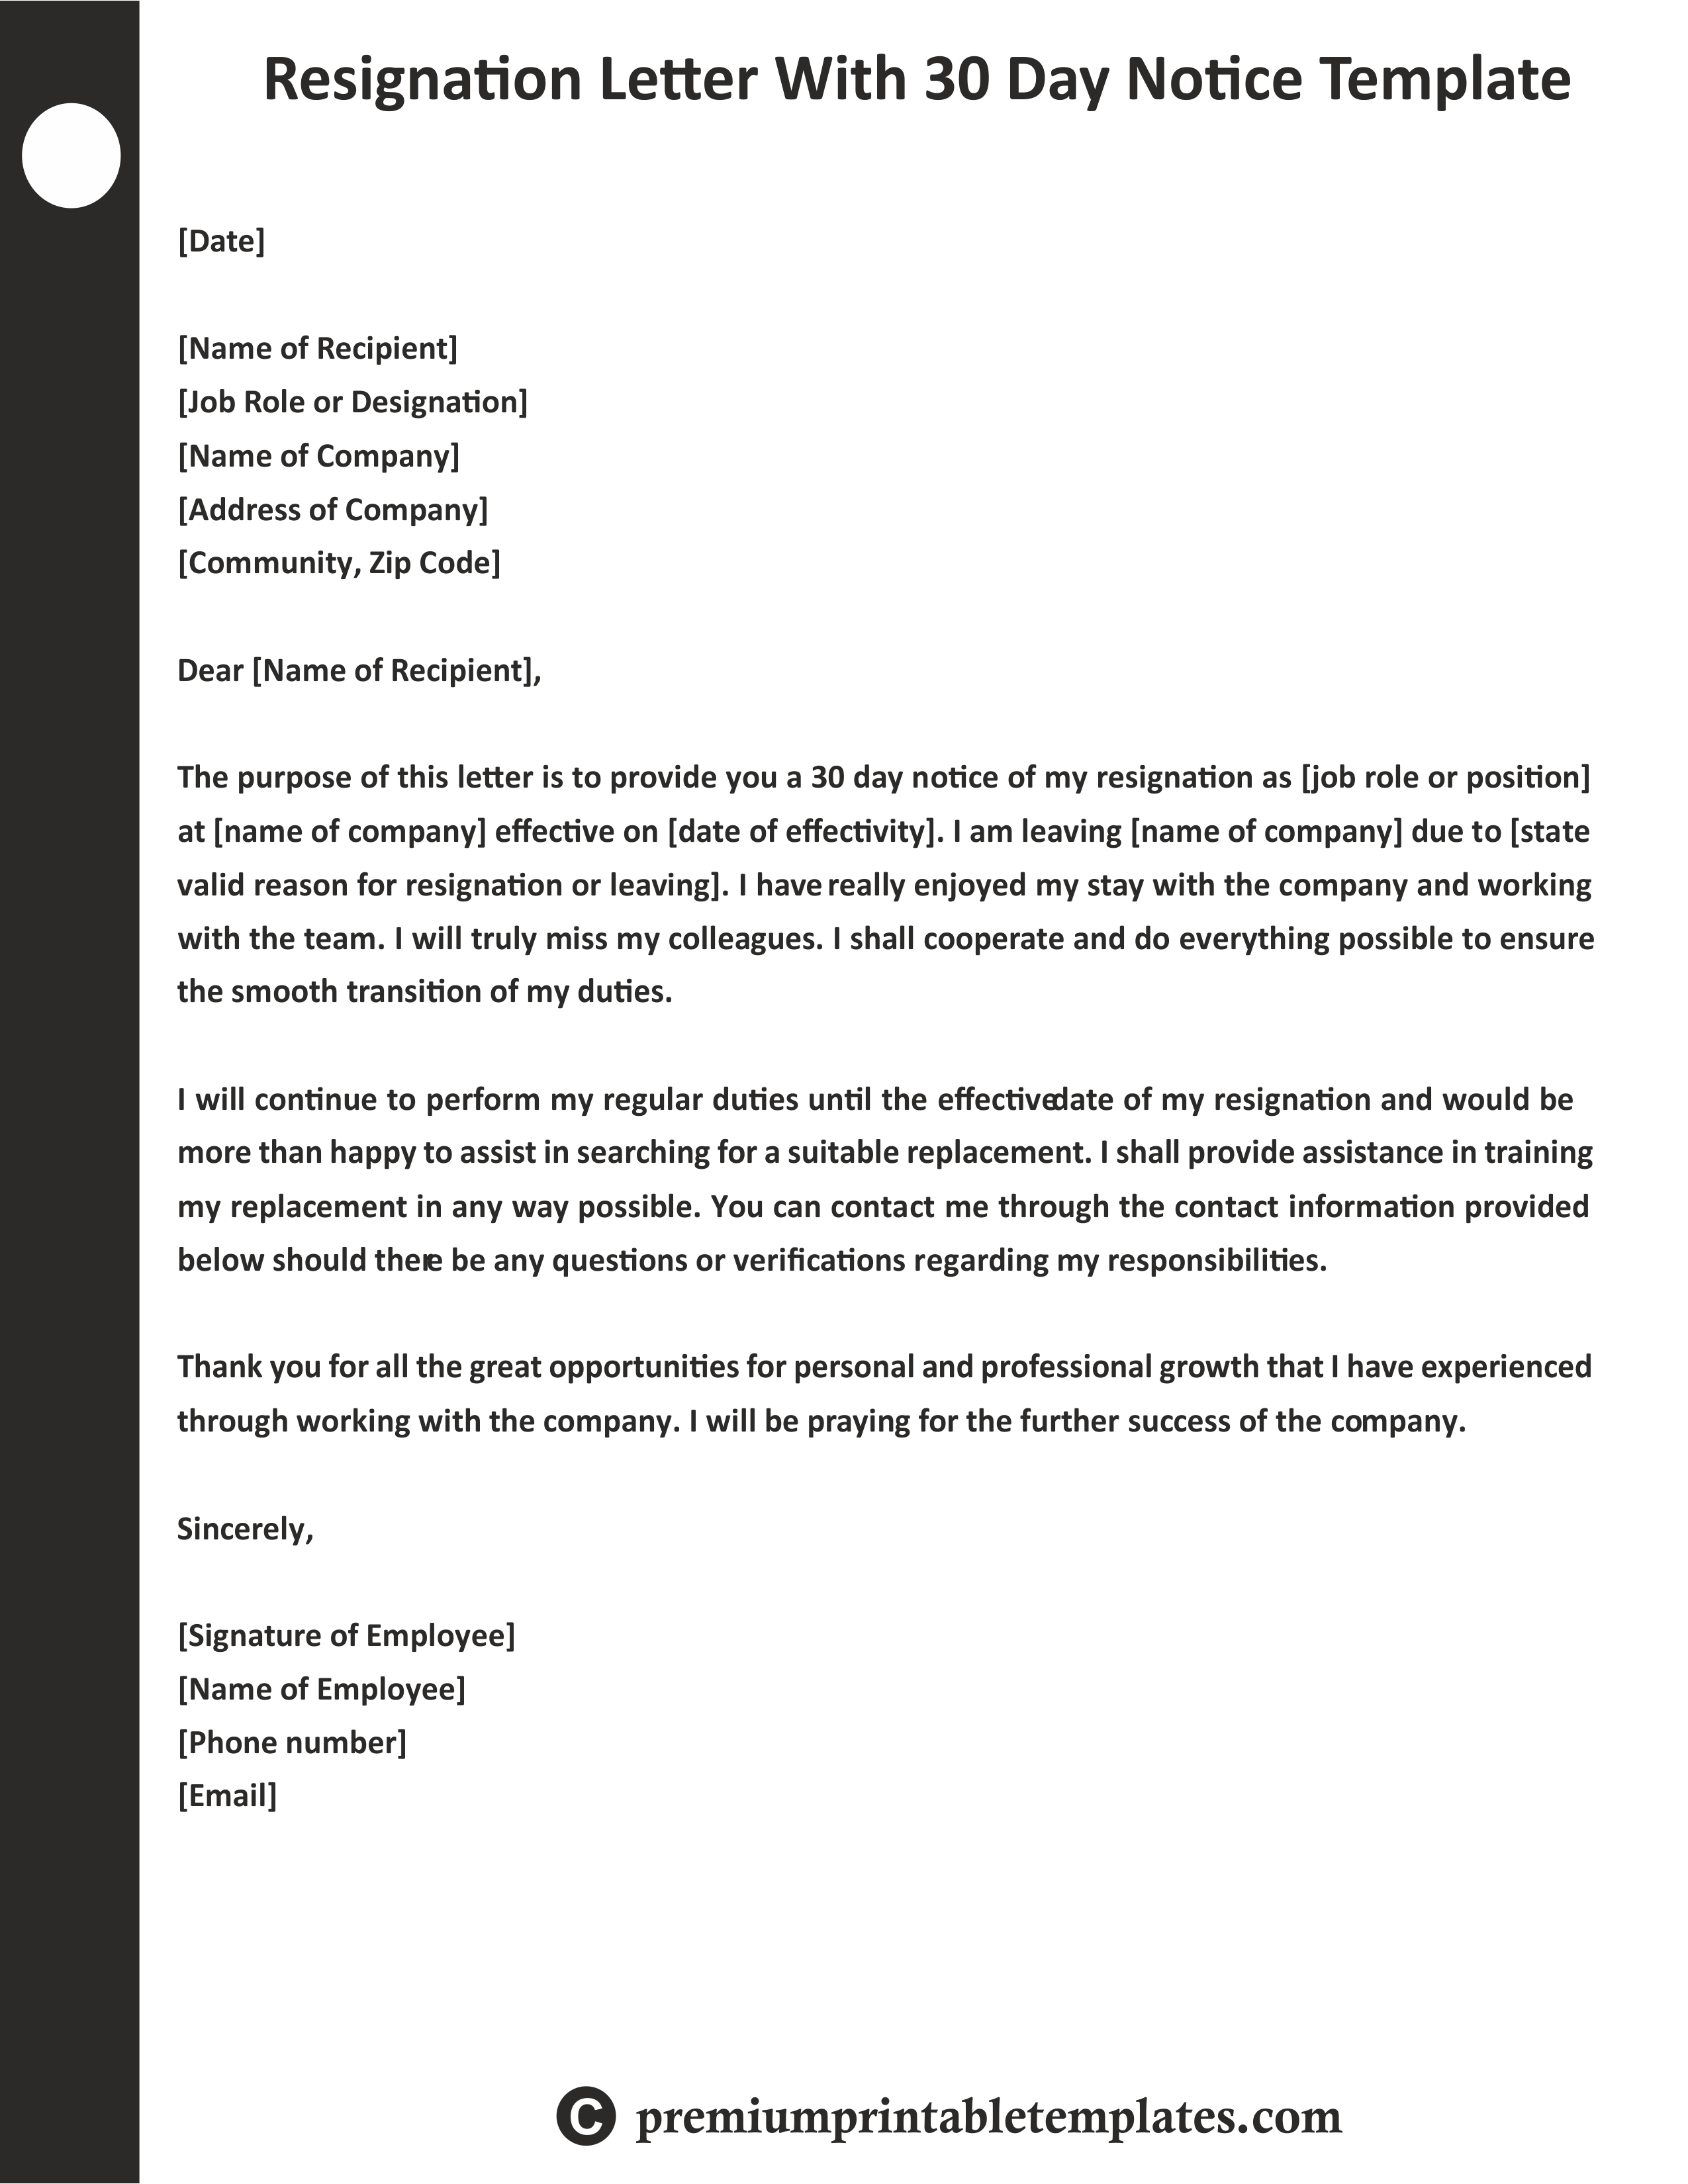 Resignation Letter with 30 Days Notice Template ...